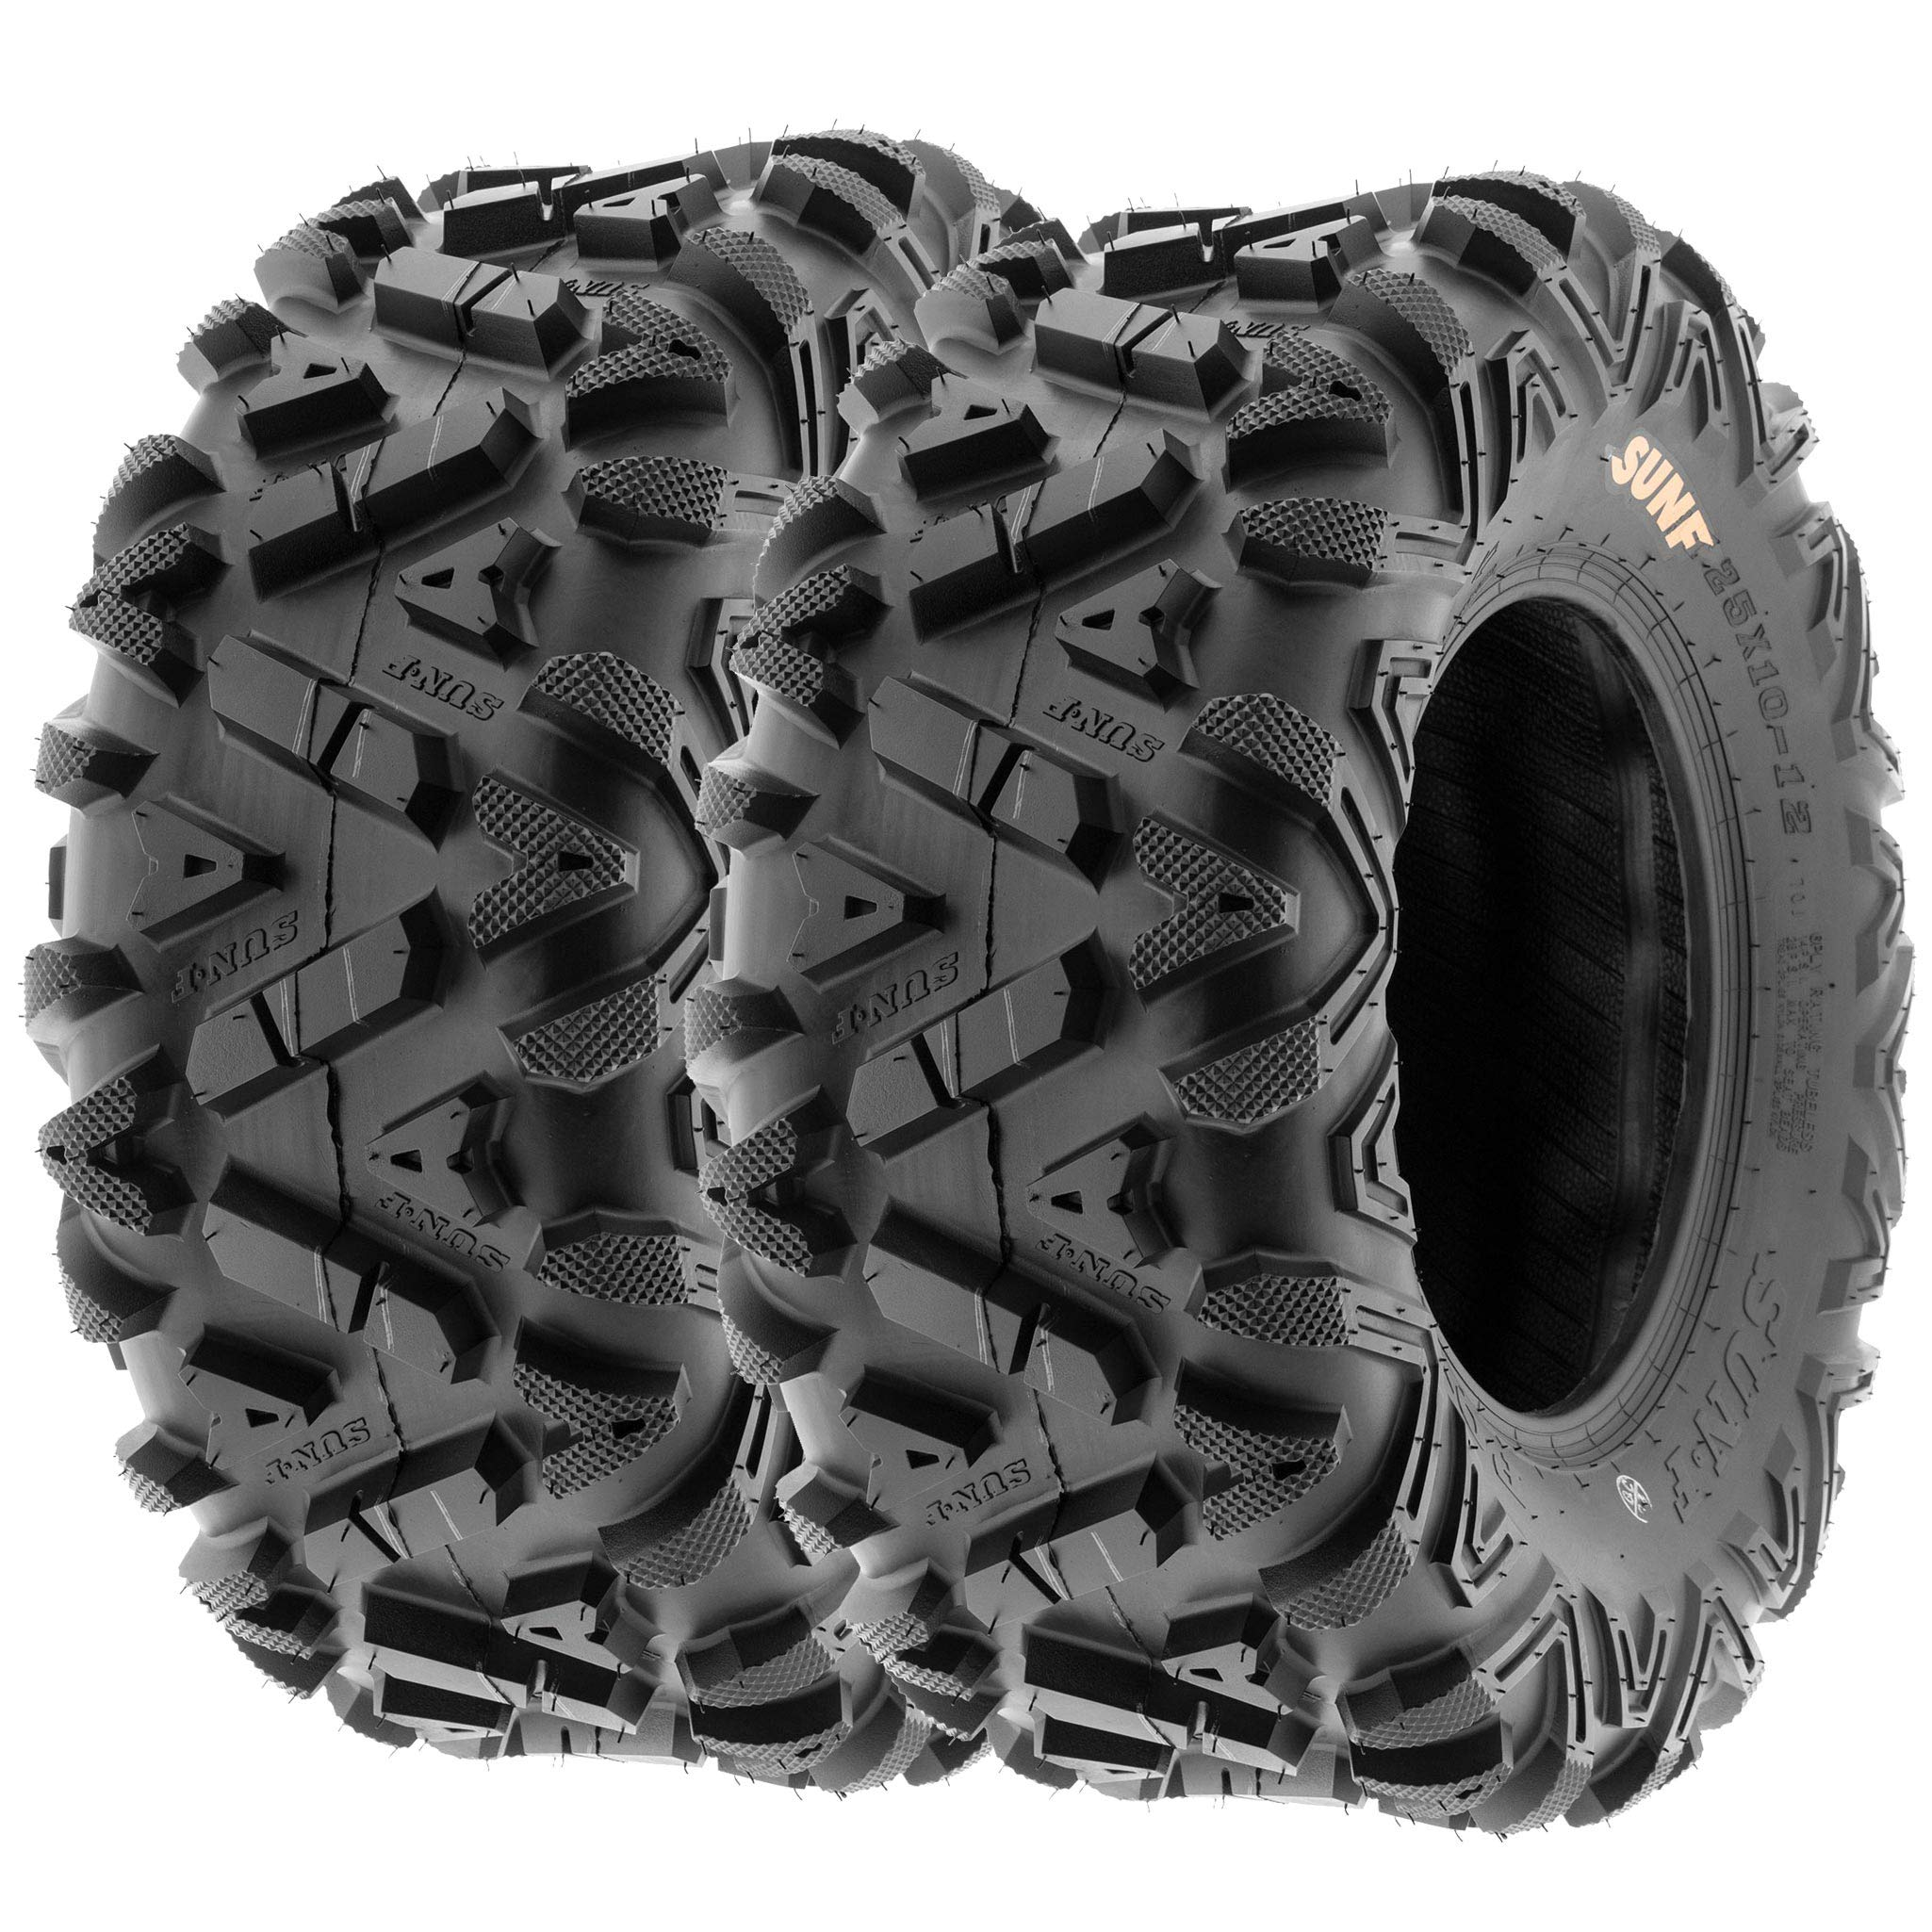 Set of 2 SunF A033 Power.I AT 26x10-12 ATV UTV Off-Road Tires All-Terrain, 6 Ply Tubeless